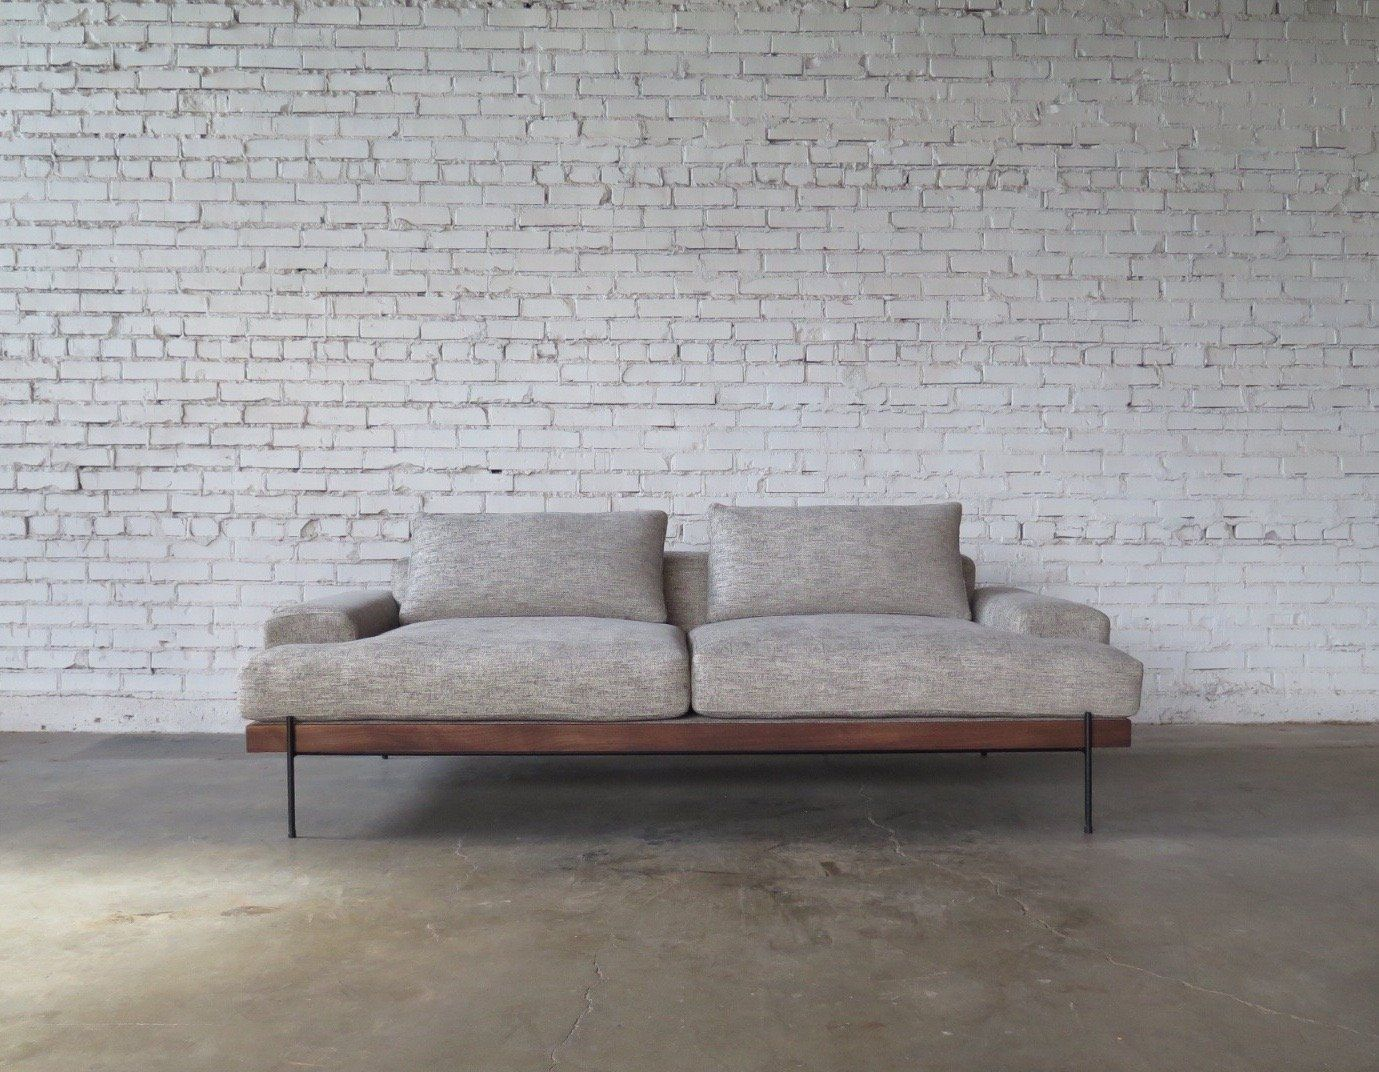 New Design The Rivera Sofa Croft House Handmade Home Furniture Sofa Modern Wood Furniture